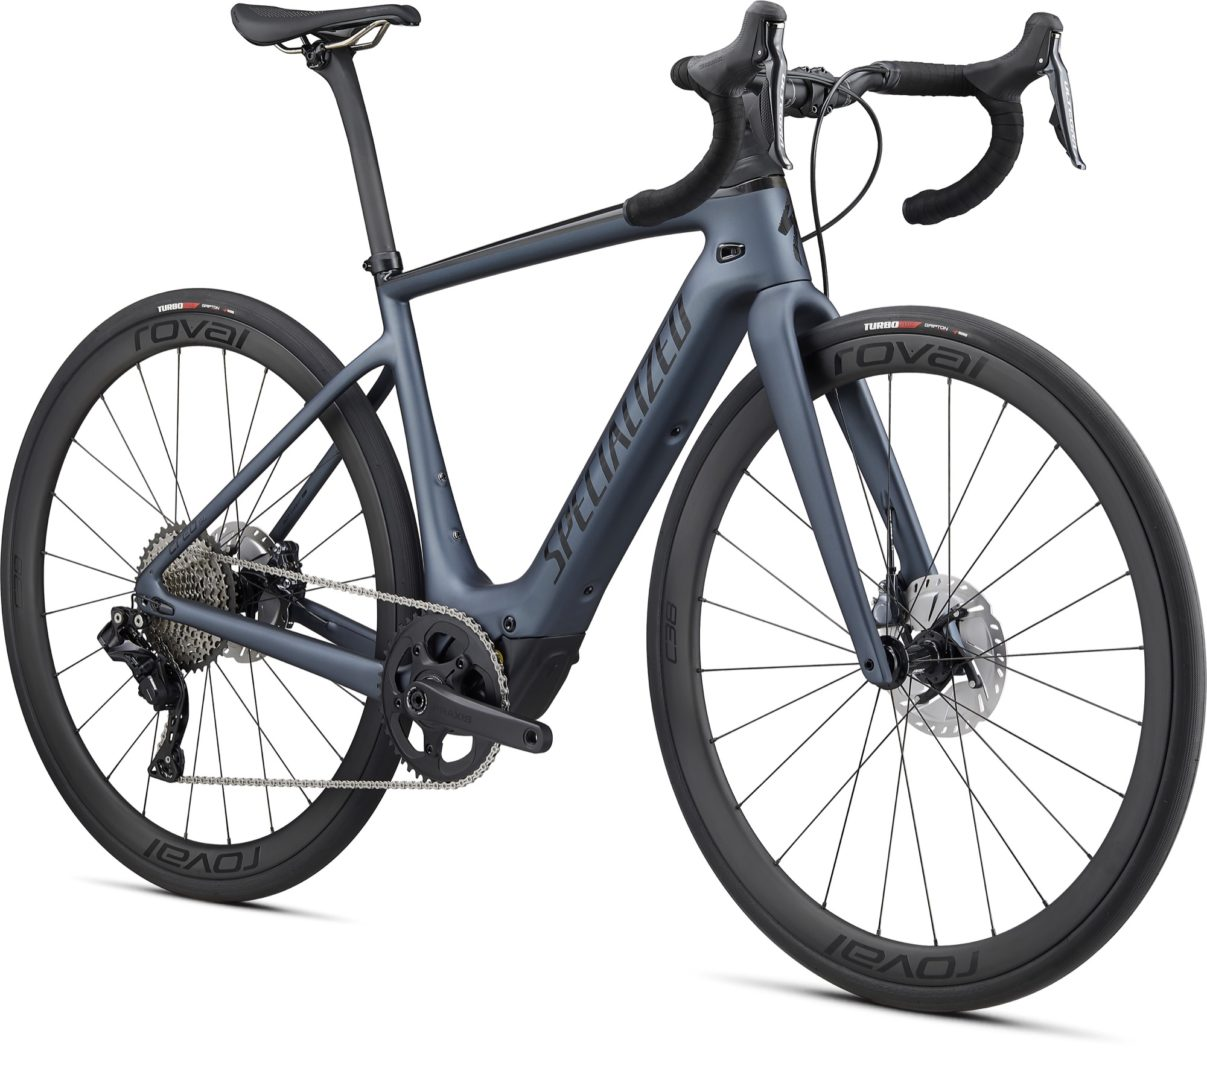 Specialized Turbo Creo SL, la nuova ebike